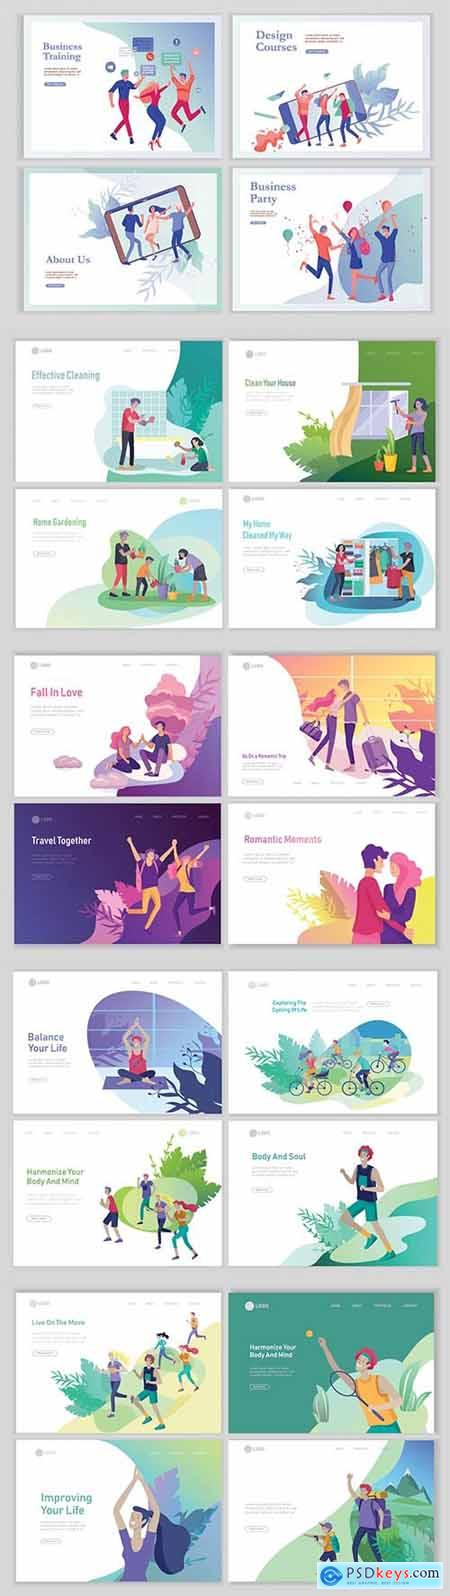 Website page isometric vector, flat banner concept illustration # 3